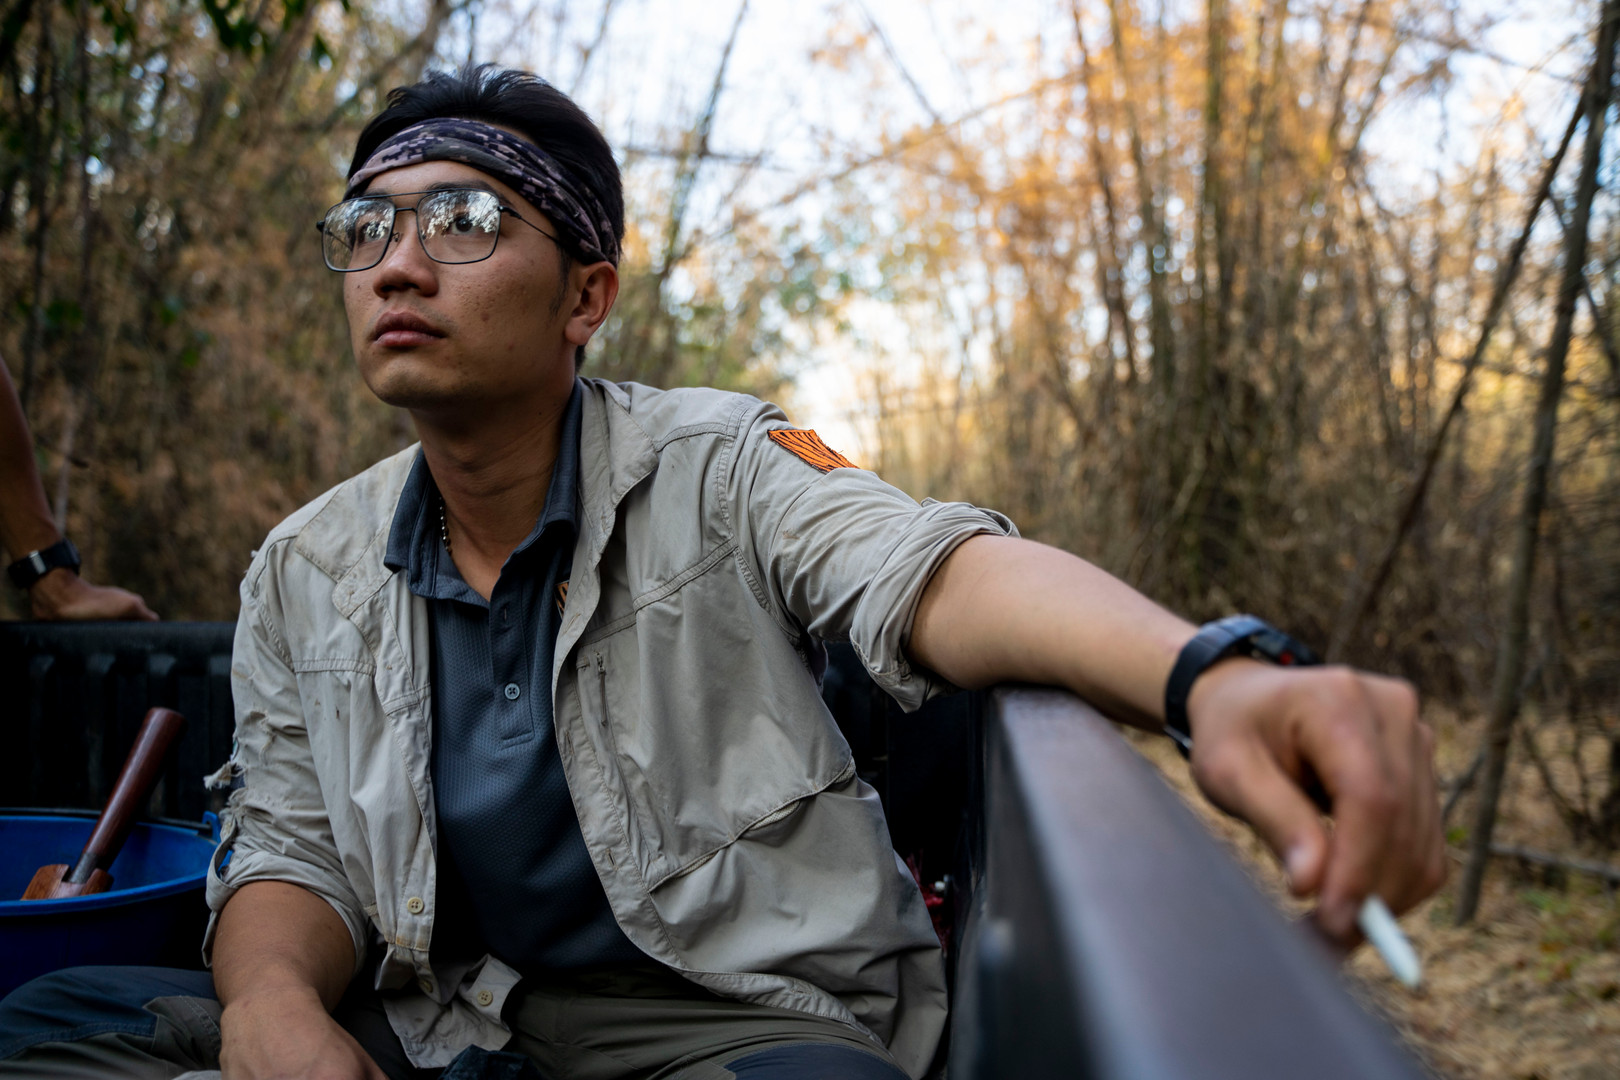 Chanon Chirajitmichai rides in the bed of a work truck back to the Kao Nang Rum Research Station after day in the field.